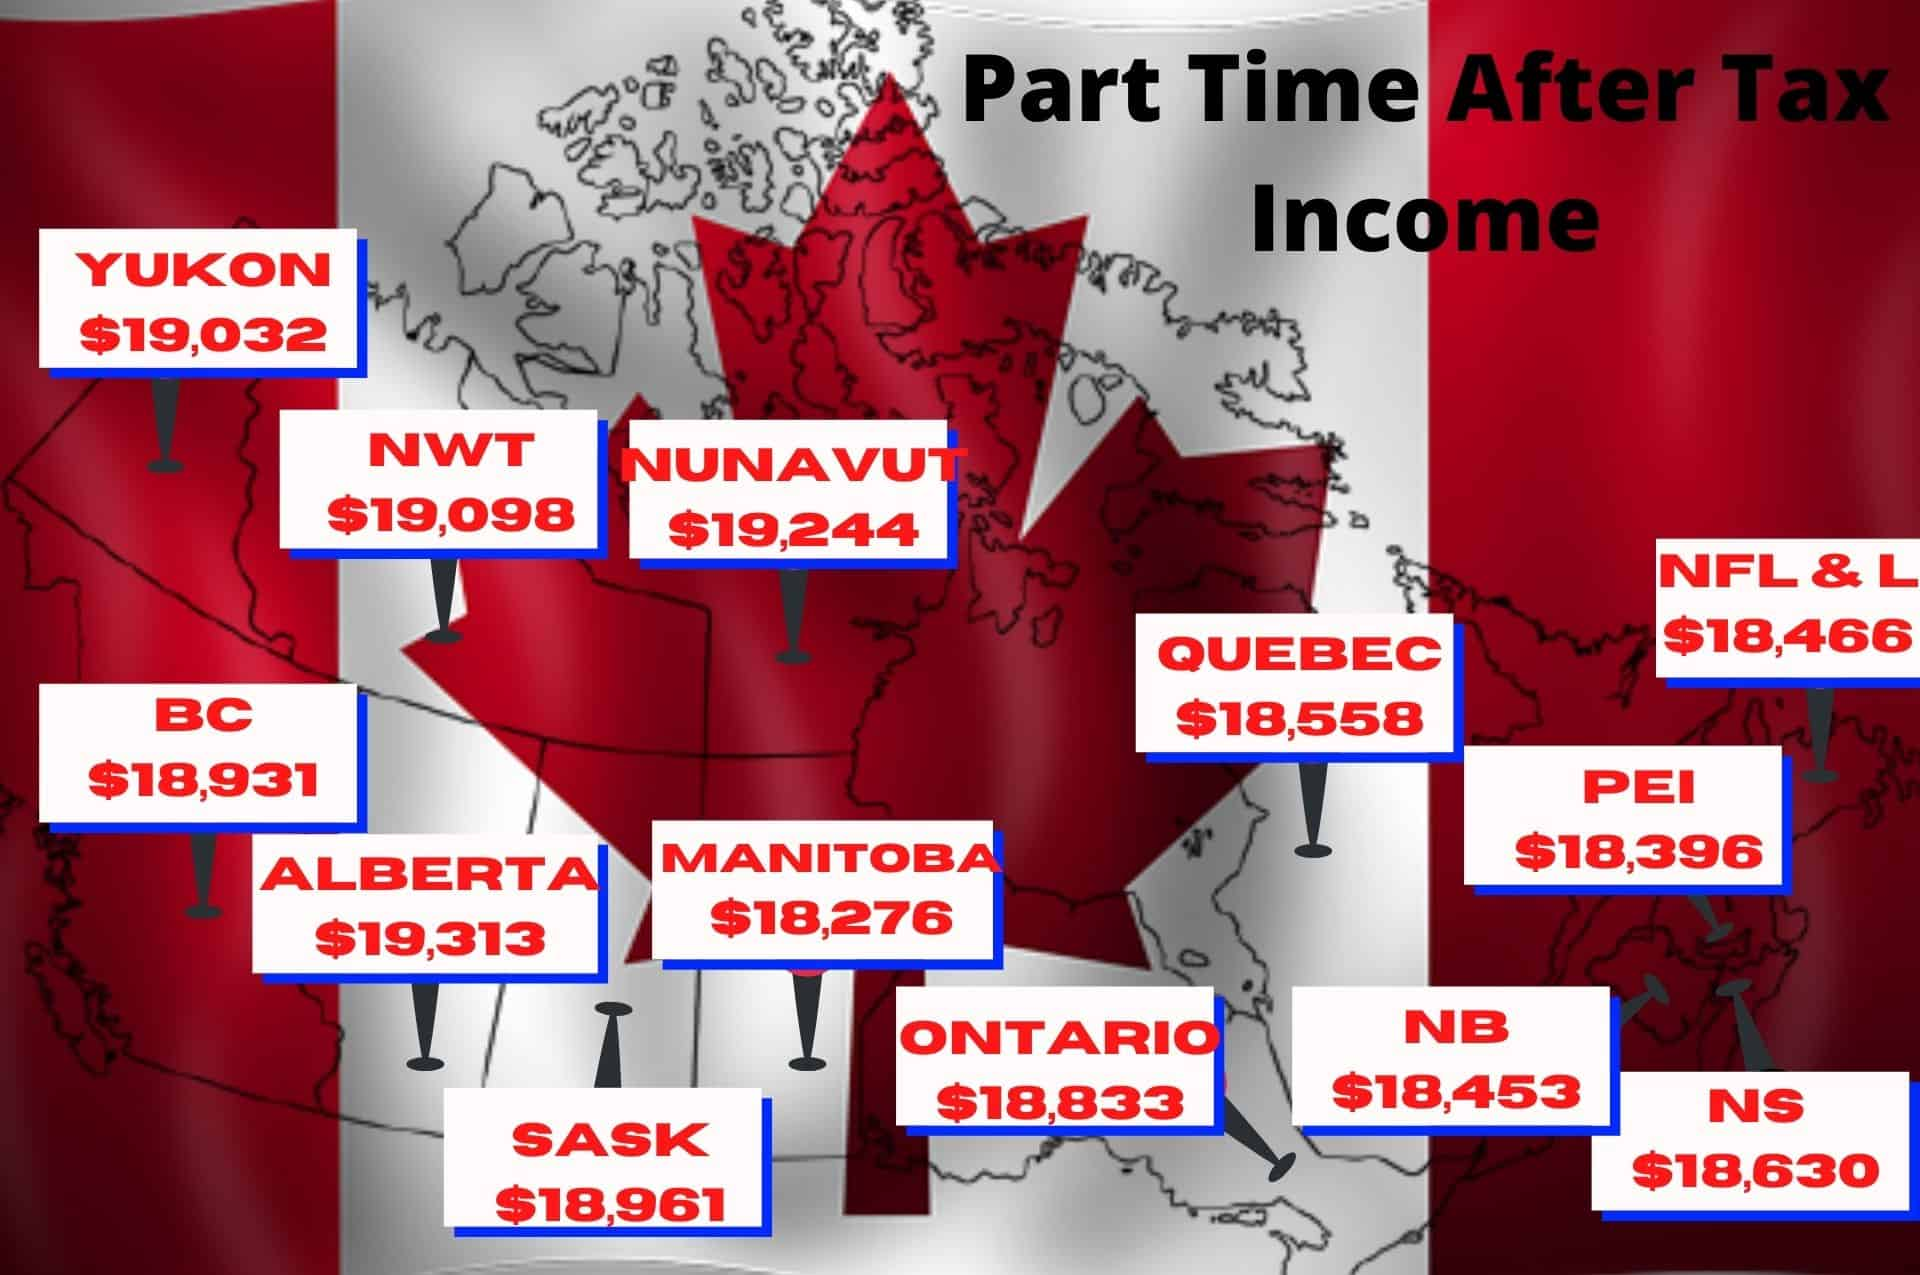 Part Time Income For Each Province In Canada